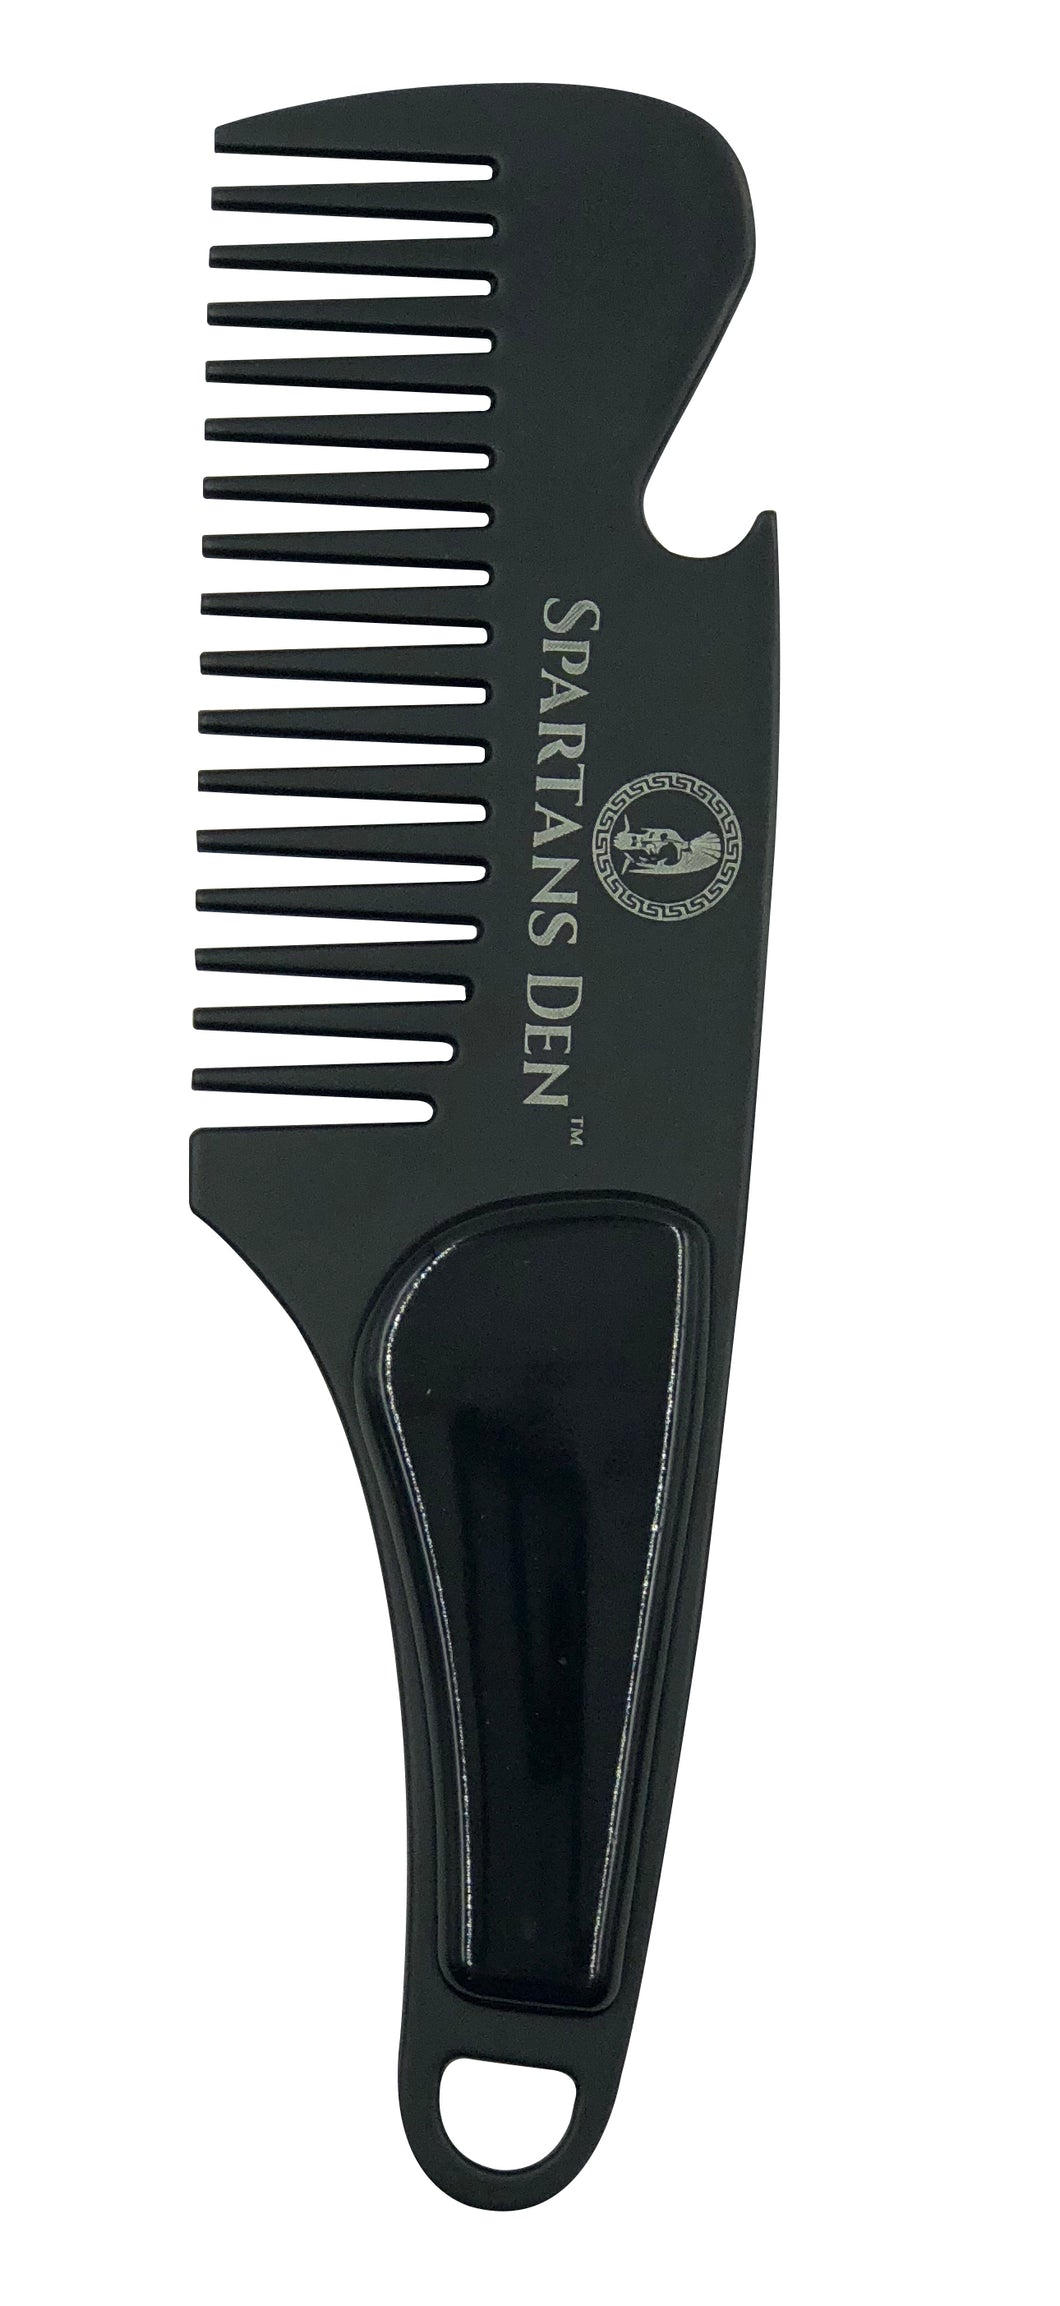 STAINLESS STEEL BEARD COMB - BLACK